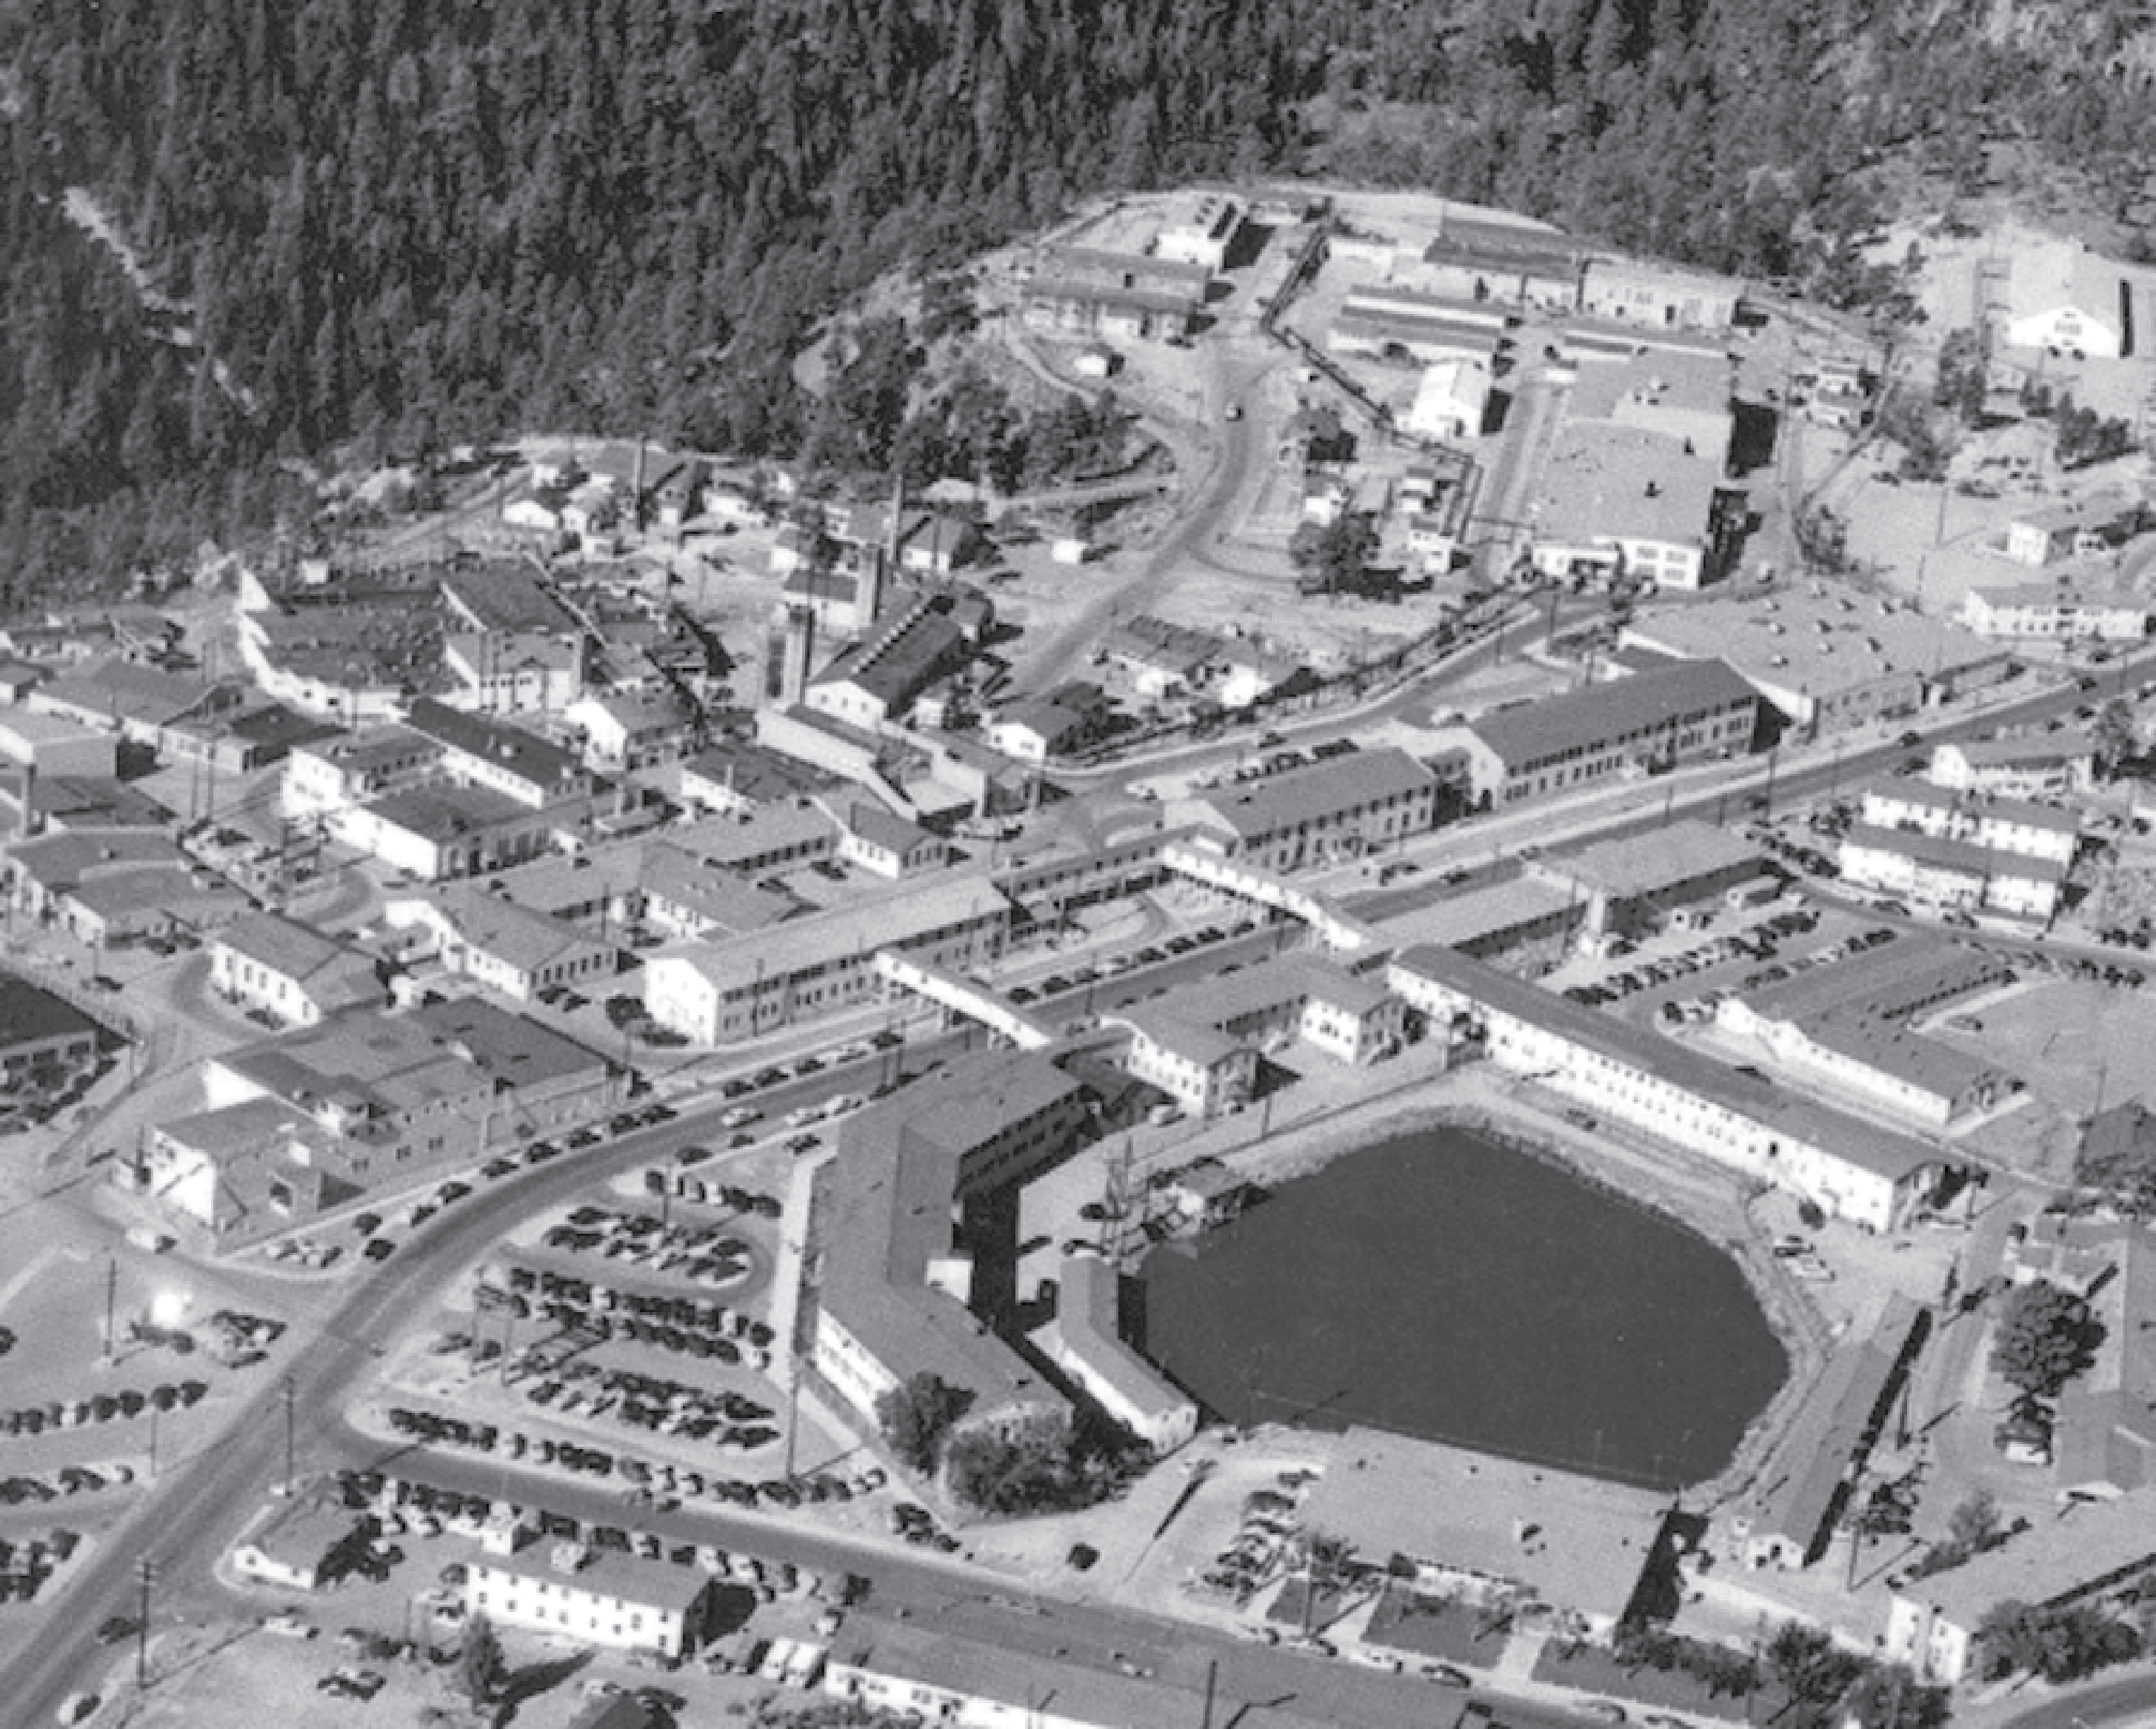 This image shows an aerial view of the Gun Site Facilities of the Manhattan Project site in the Manhattan National Historical Park located in Los Alamos, New Mexico.